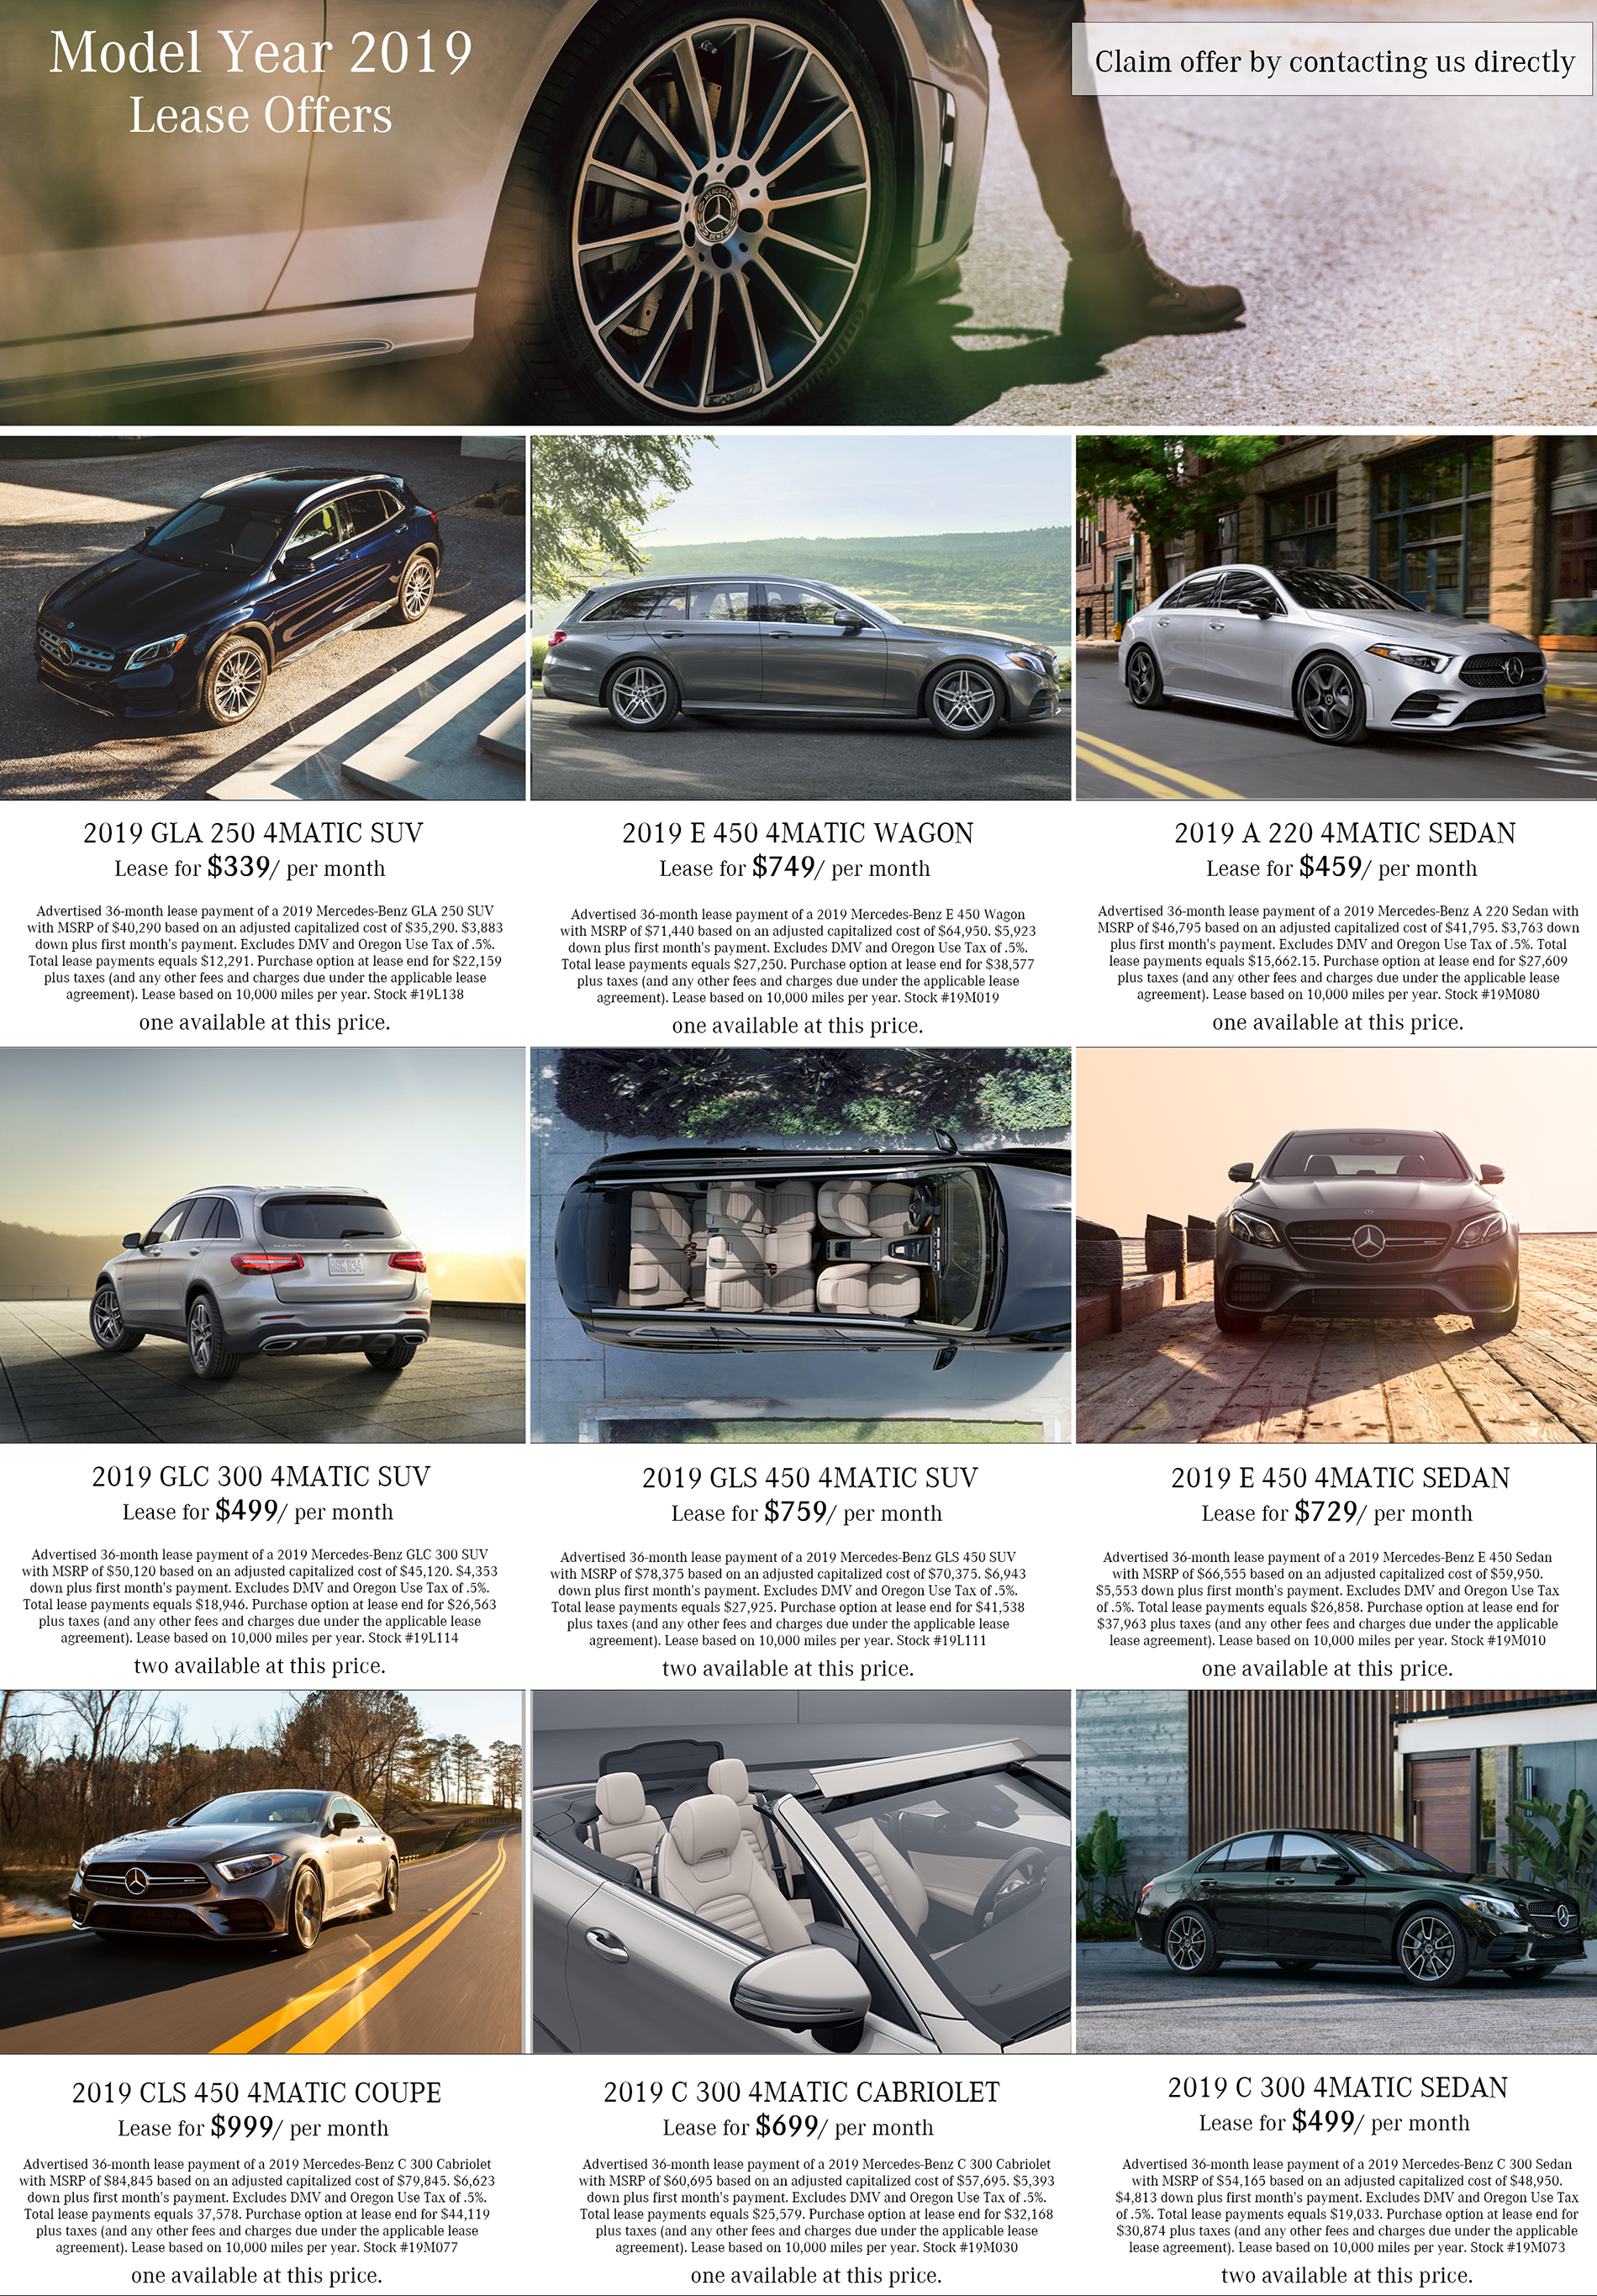 Mercedes-Benz Lease Specials on 2019 Models